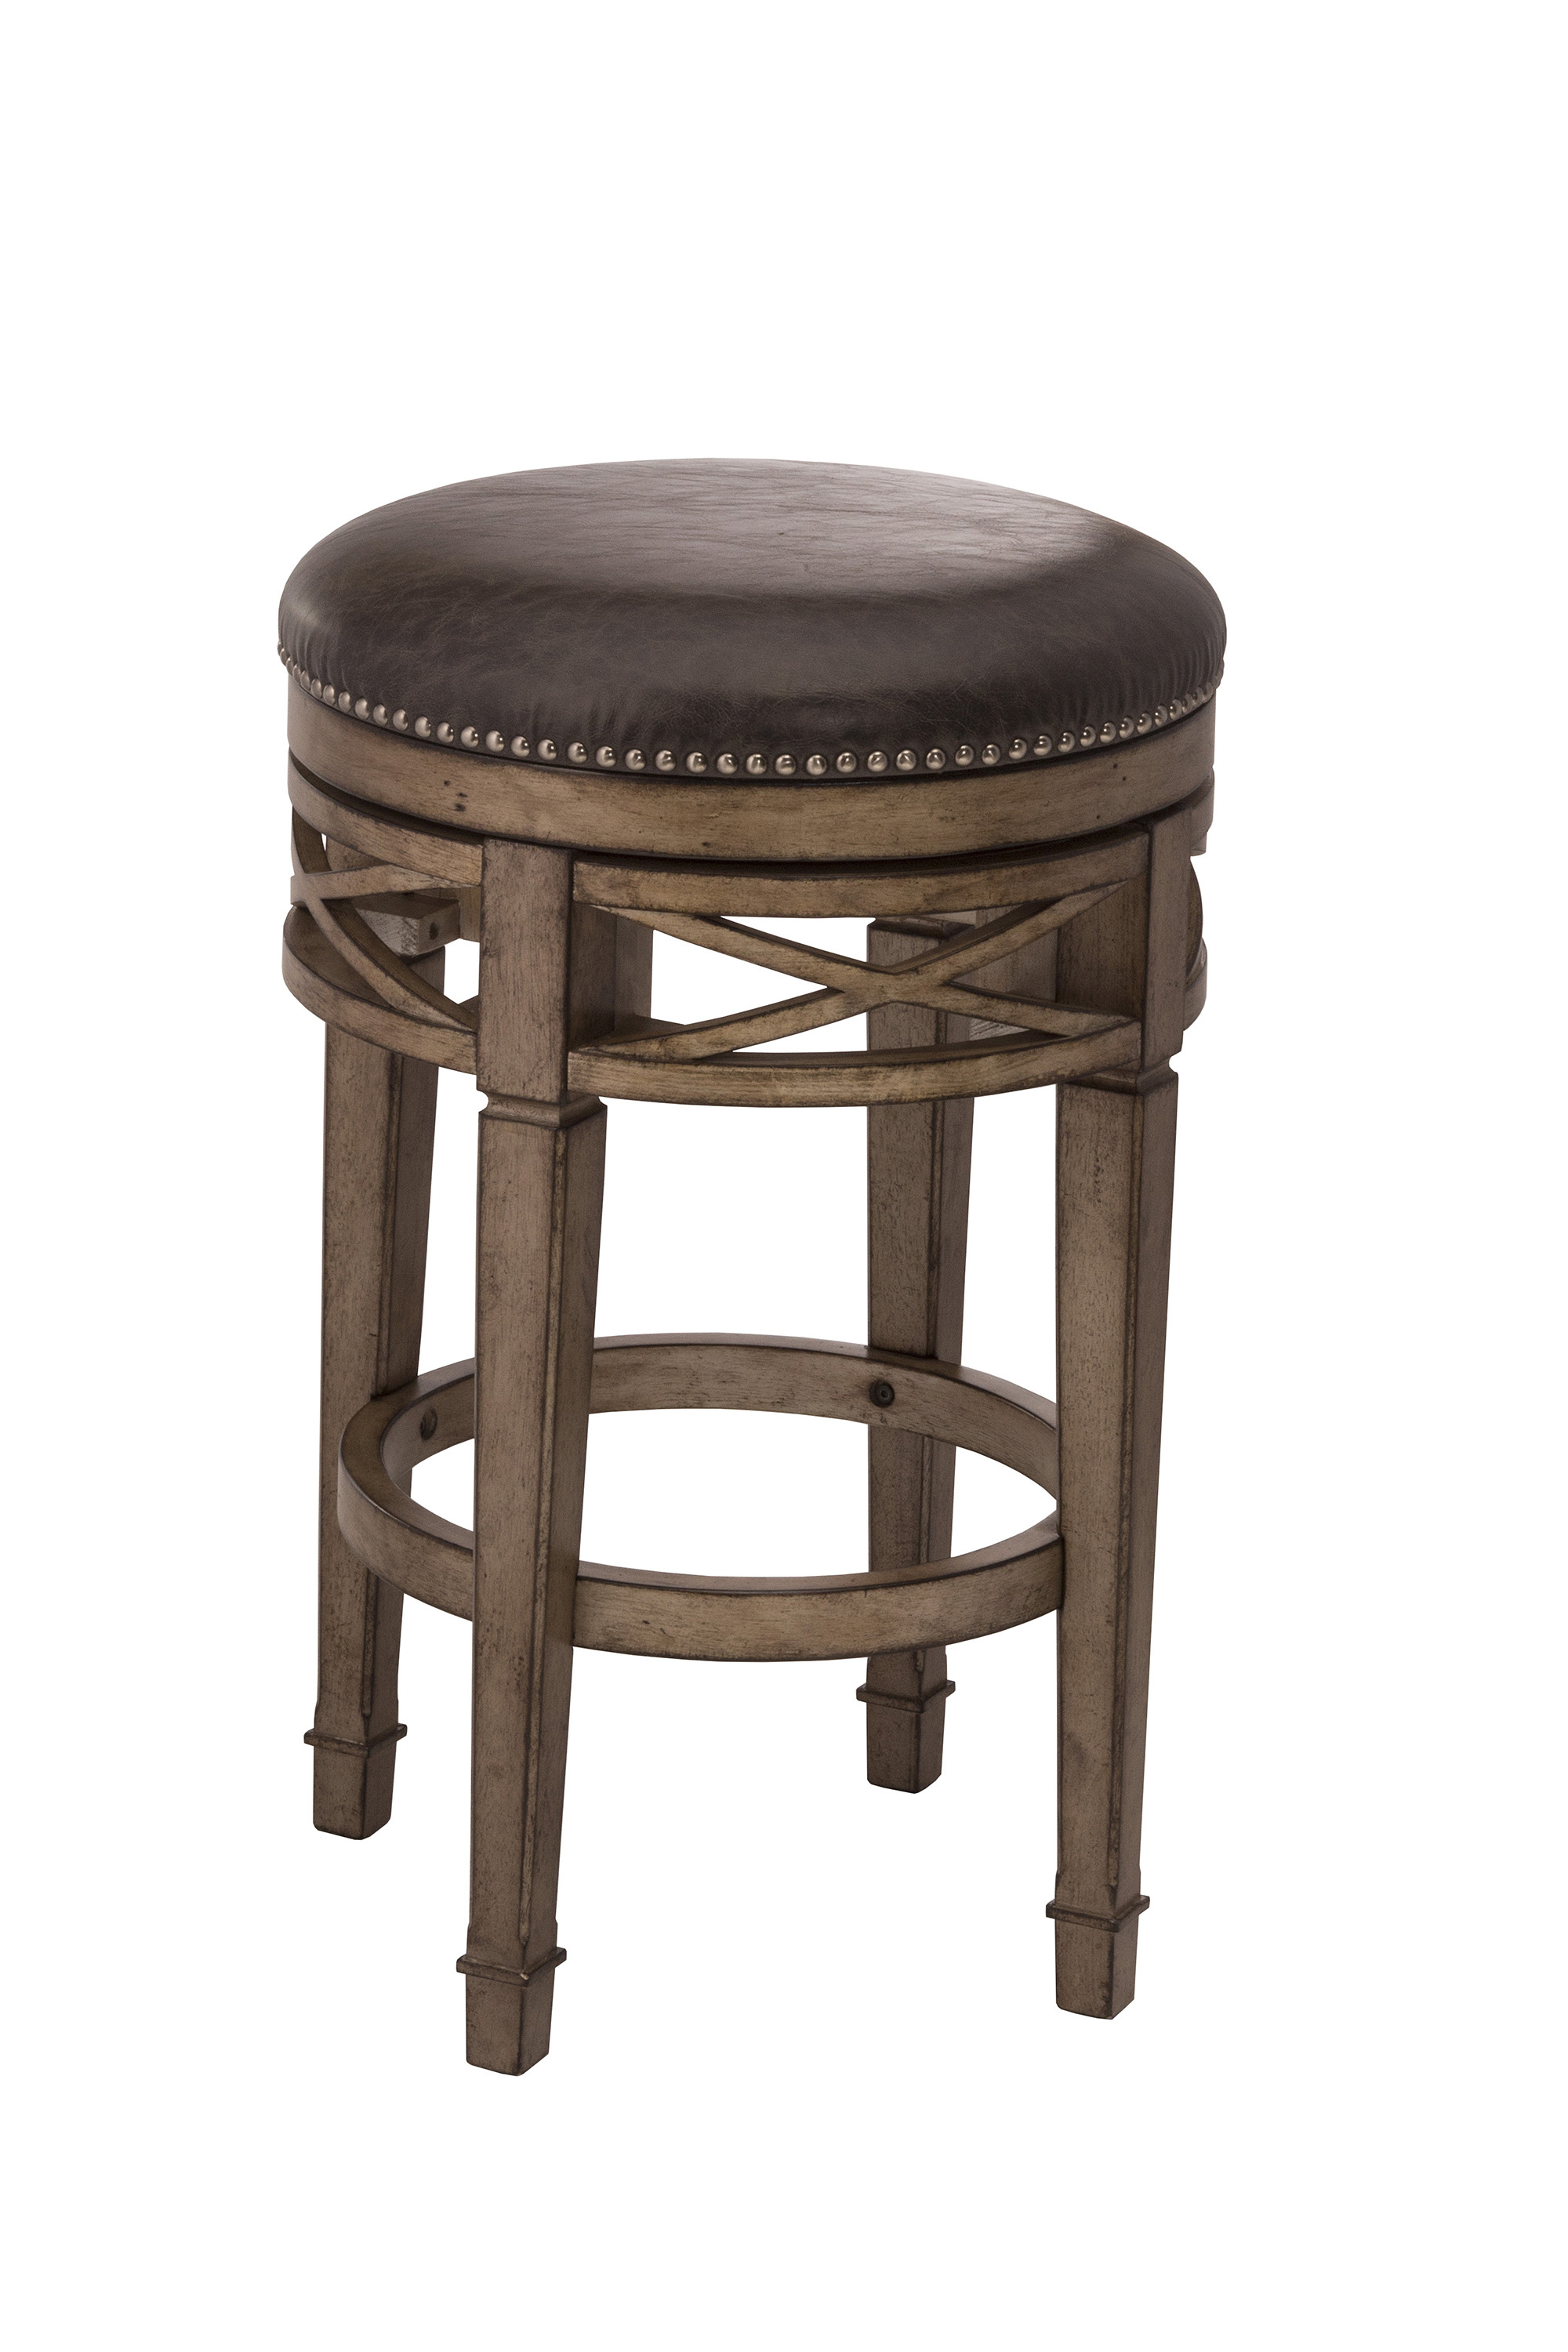 backless chair height stool round pub style table and chairs hillsdale bar stools upholstered swivel